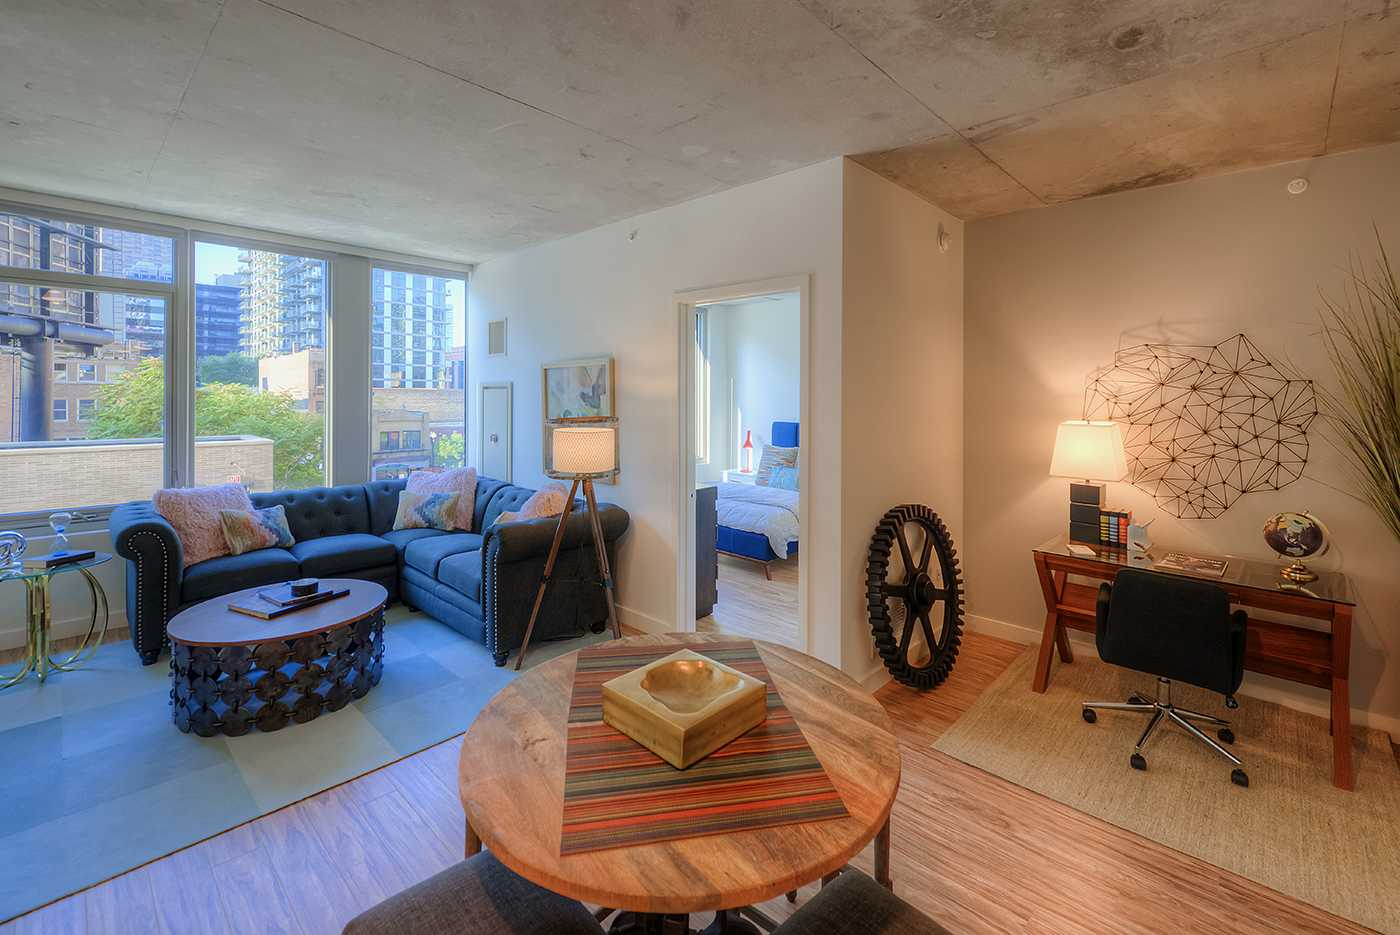 Best apartment rental service in Chicago - EMME